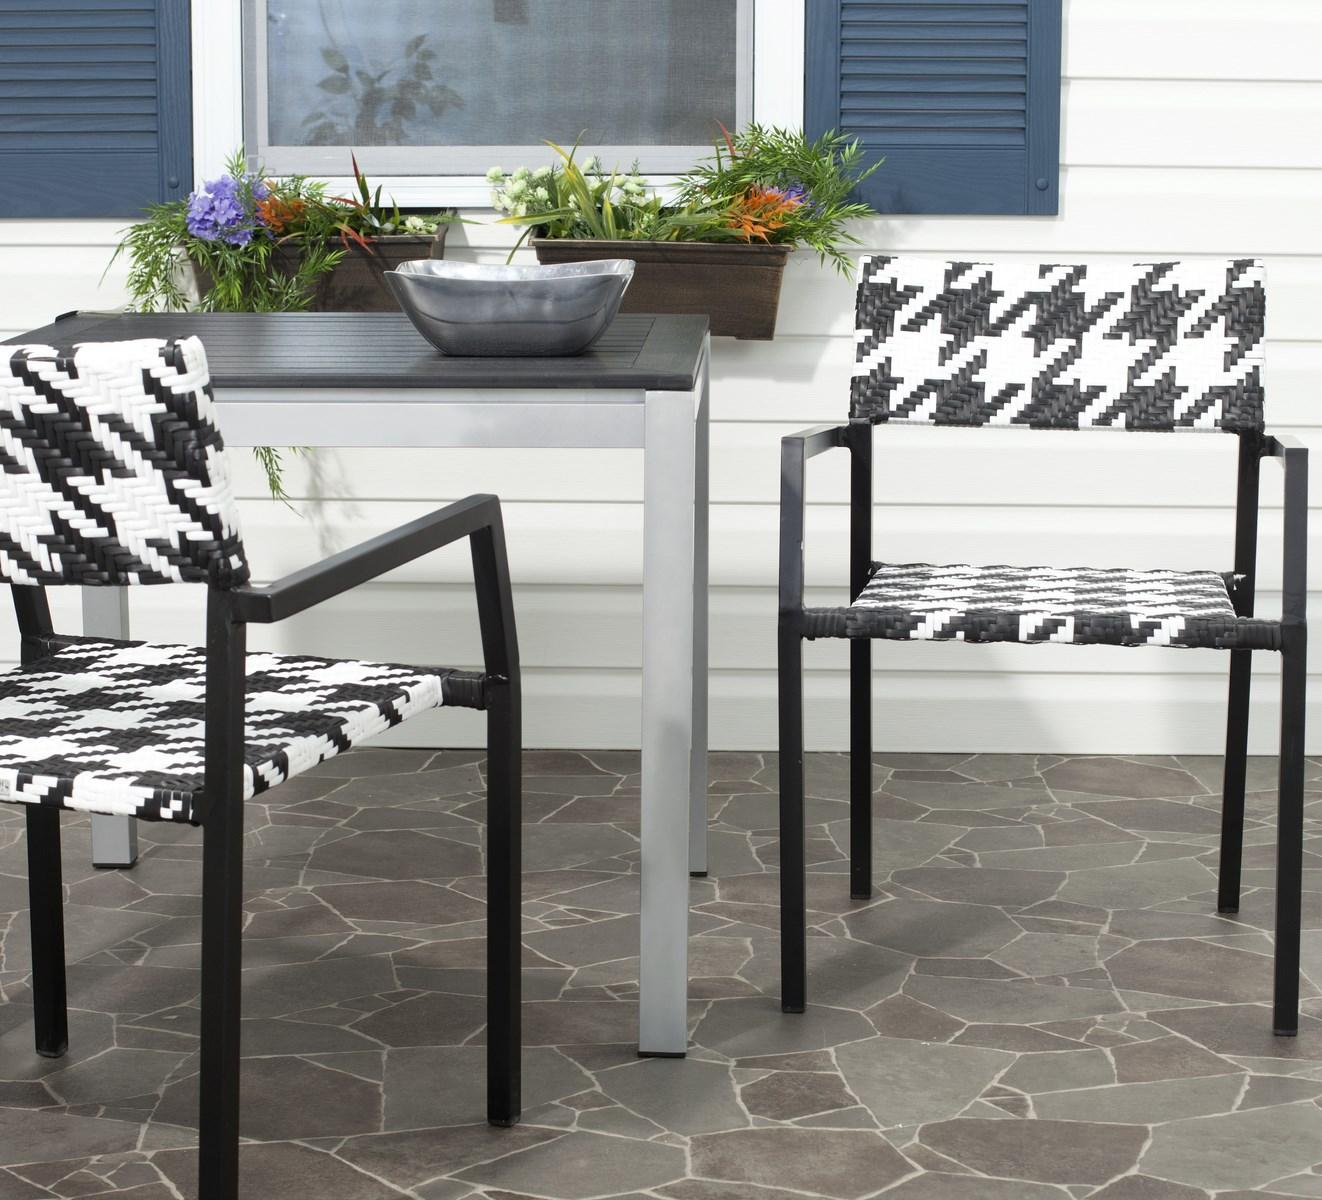 Safavieh Home Furniture: PAT4001A-SET2 Outdoor Home Furnishings, Patio Chairs